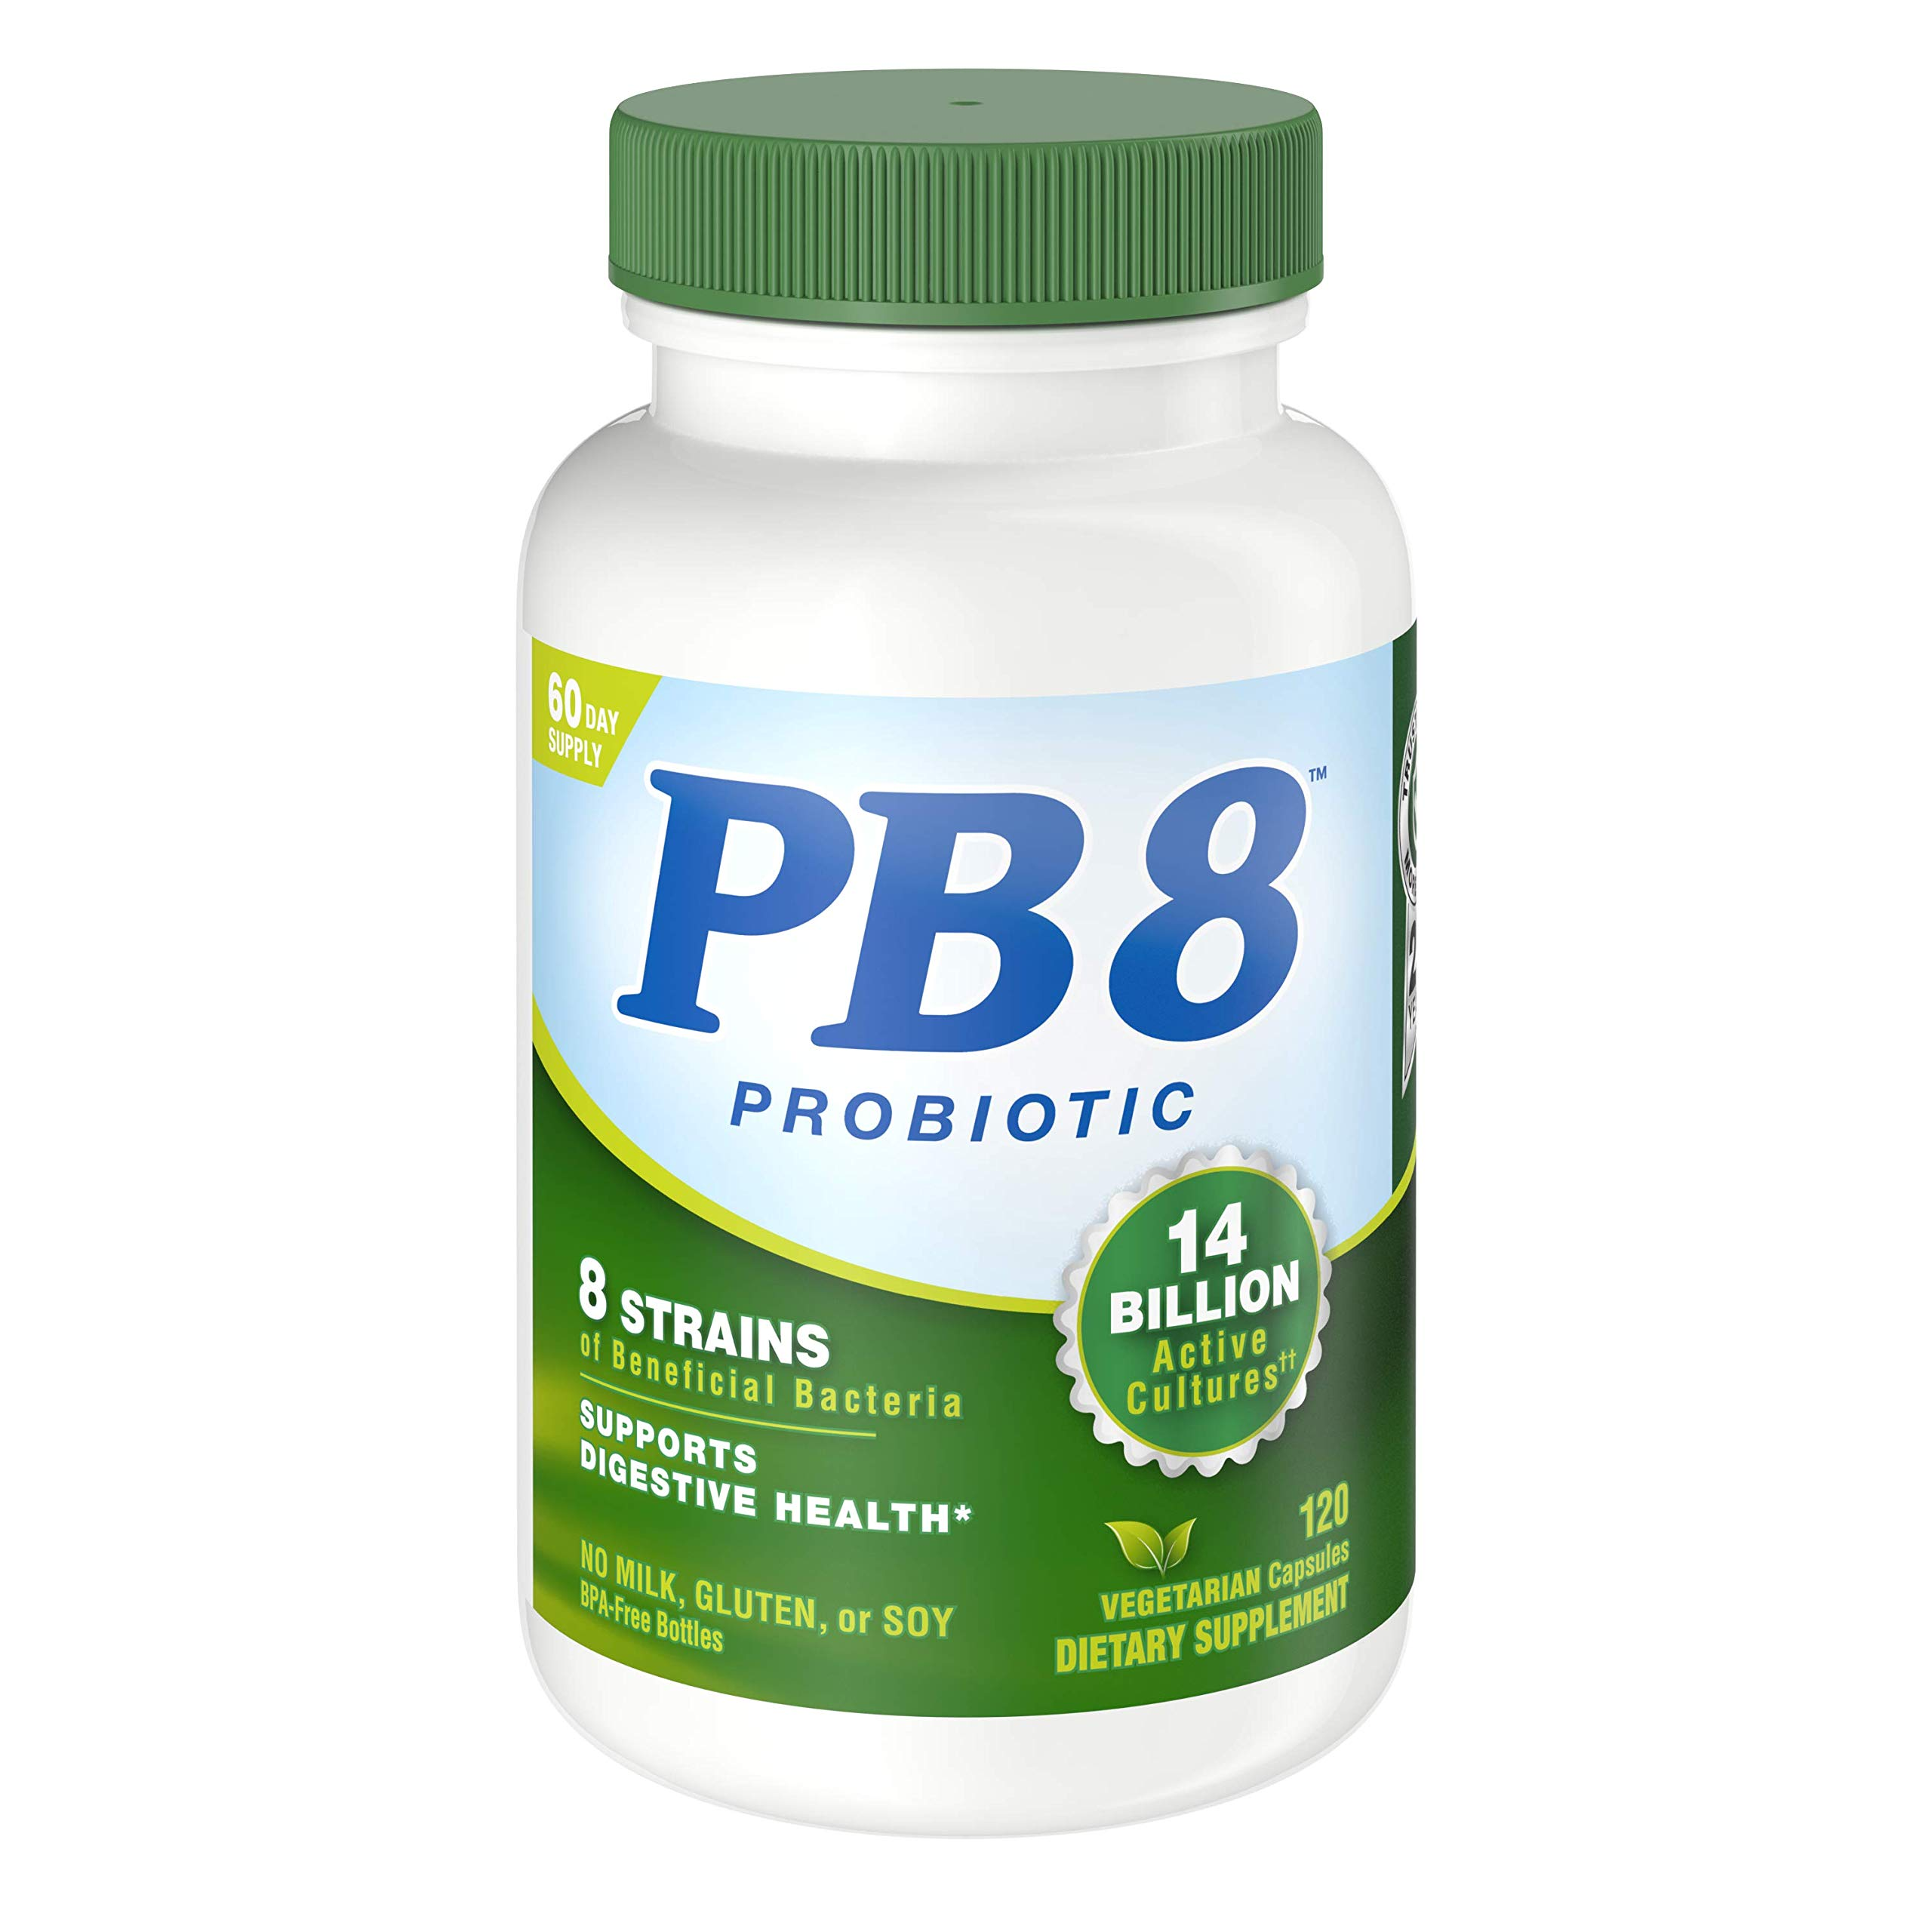 Nutrition Now PB 8 Probiotic Acidophilus For Life* Vegetarian Dietary Supplement for Men and Women, 120 Count by Nutrition Now